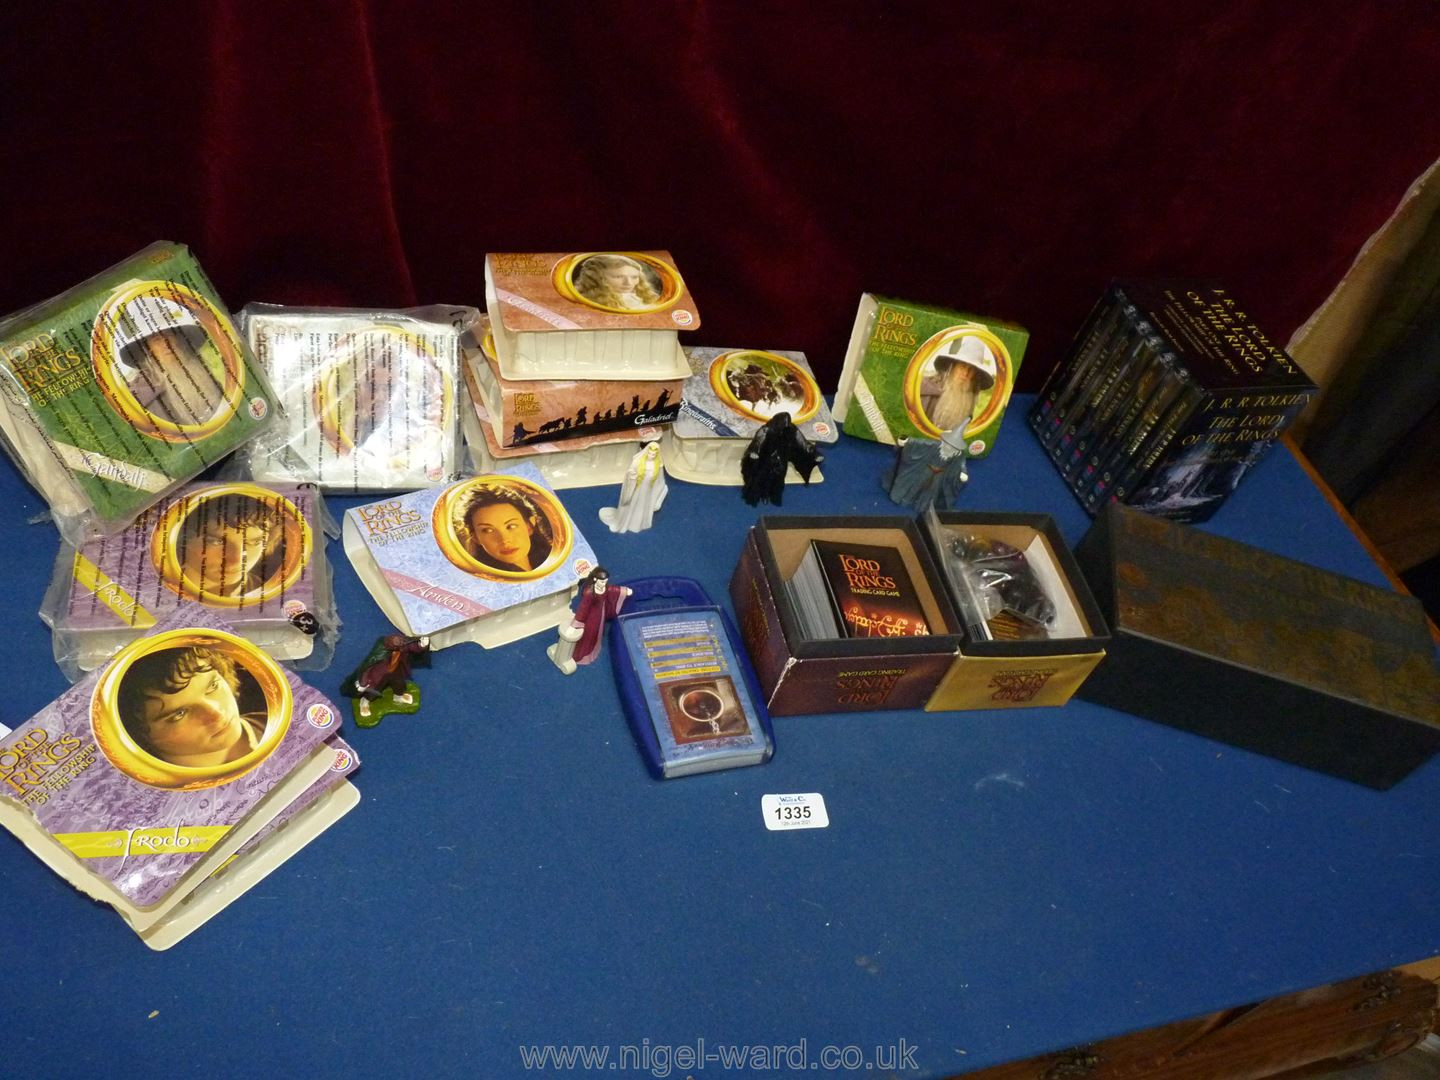 A box of figures and trading cards from Lord of The Rings together with two audio cassettes of The